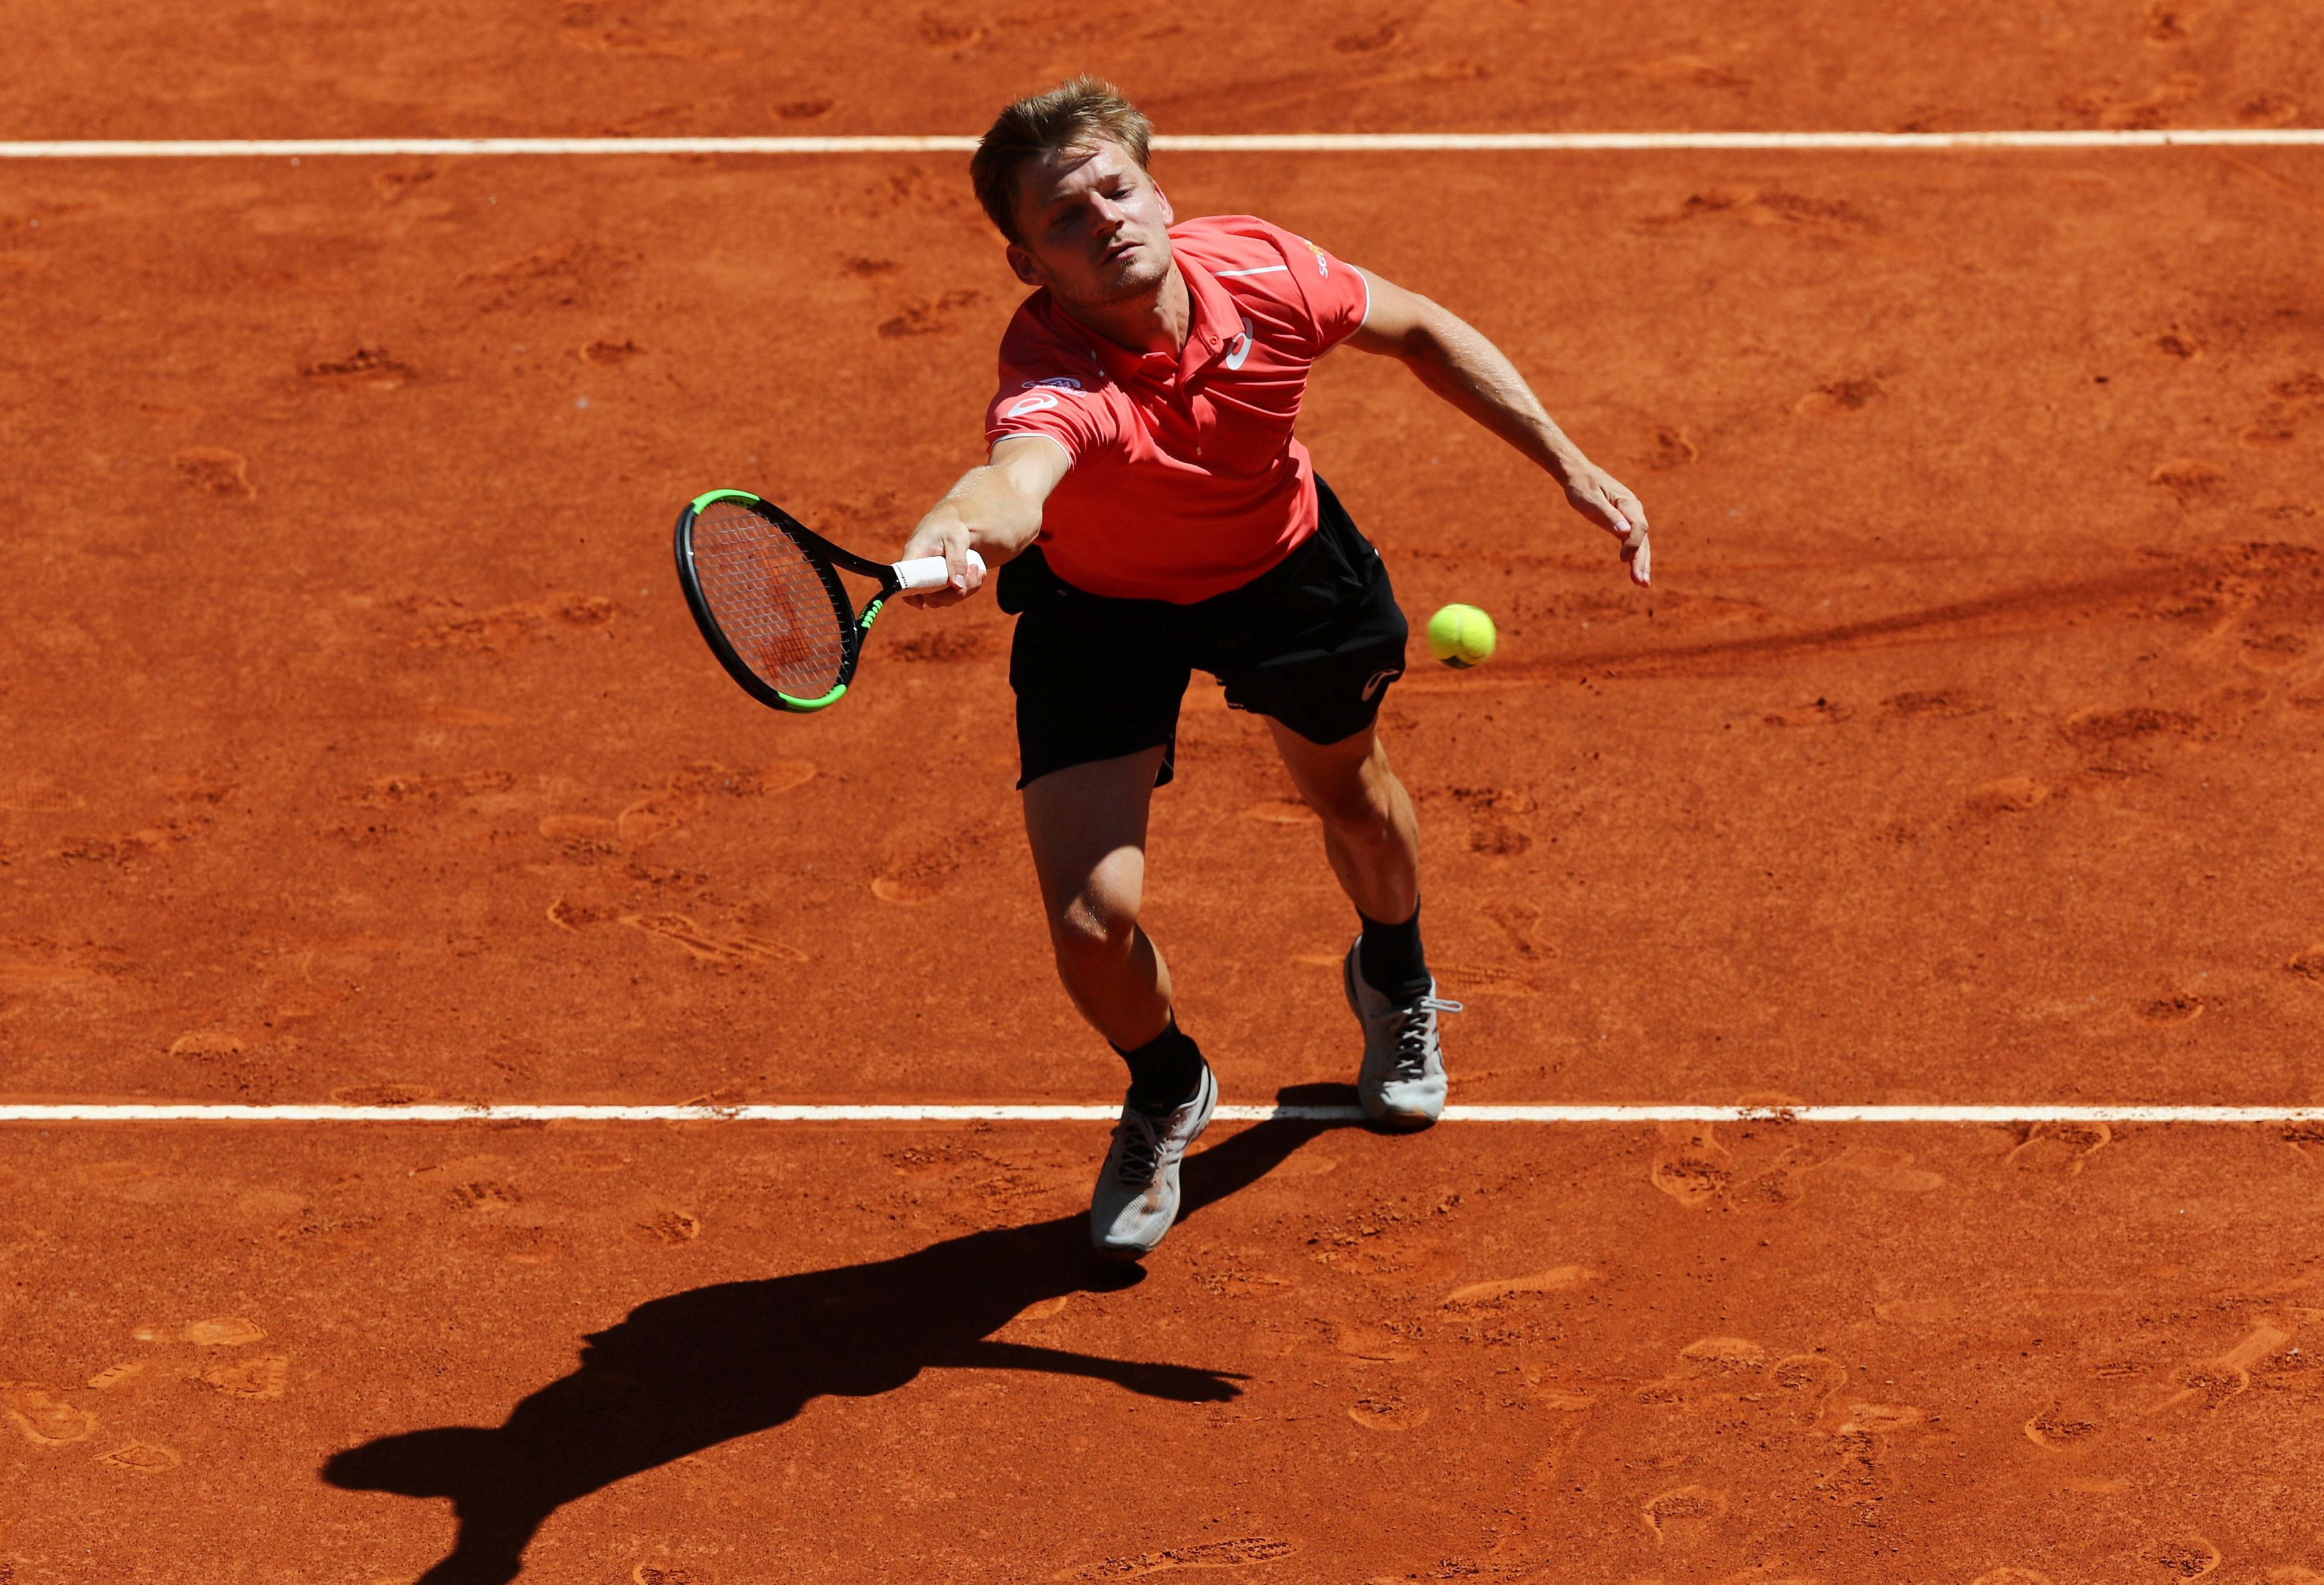 World number ten Goffin was crushed as Edmund continued his impressive form in Spain